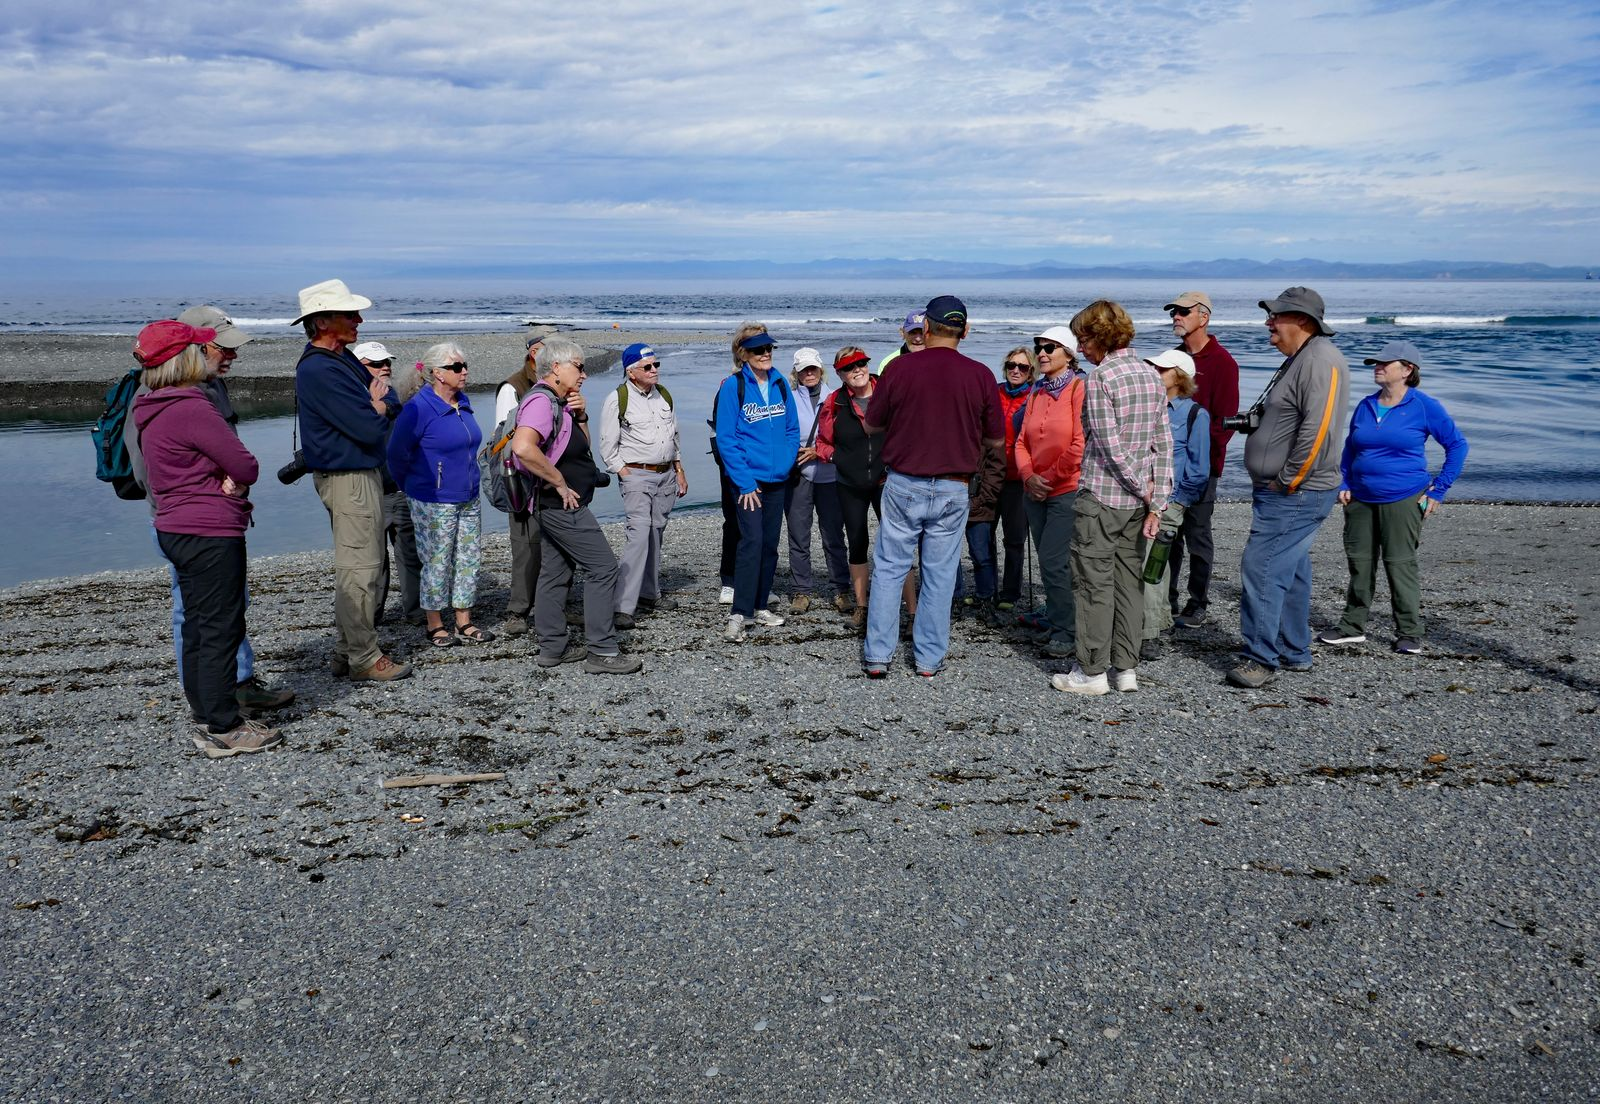 Robert explains how Salmon can now migrate up the Elwha